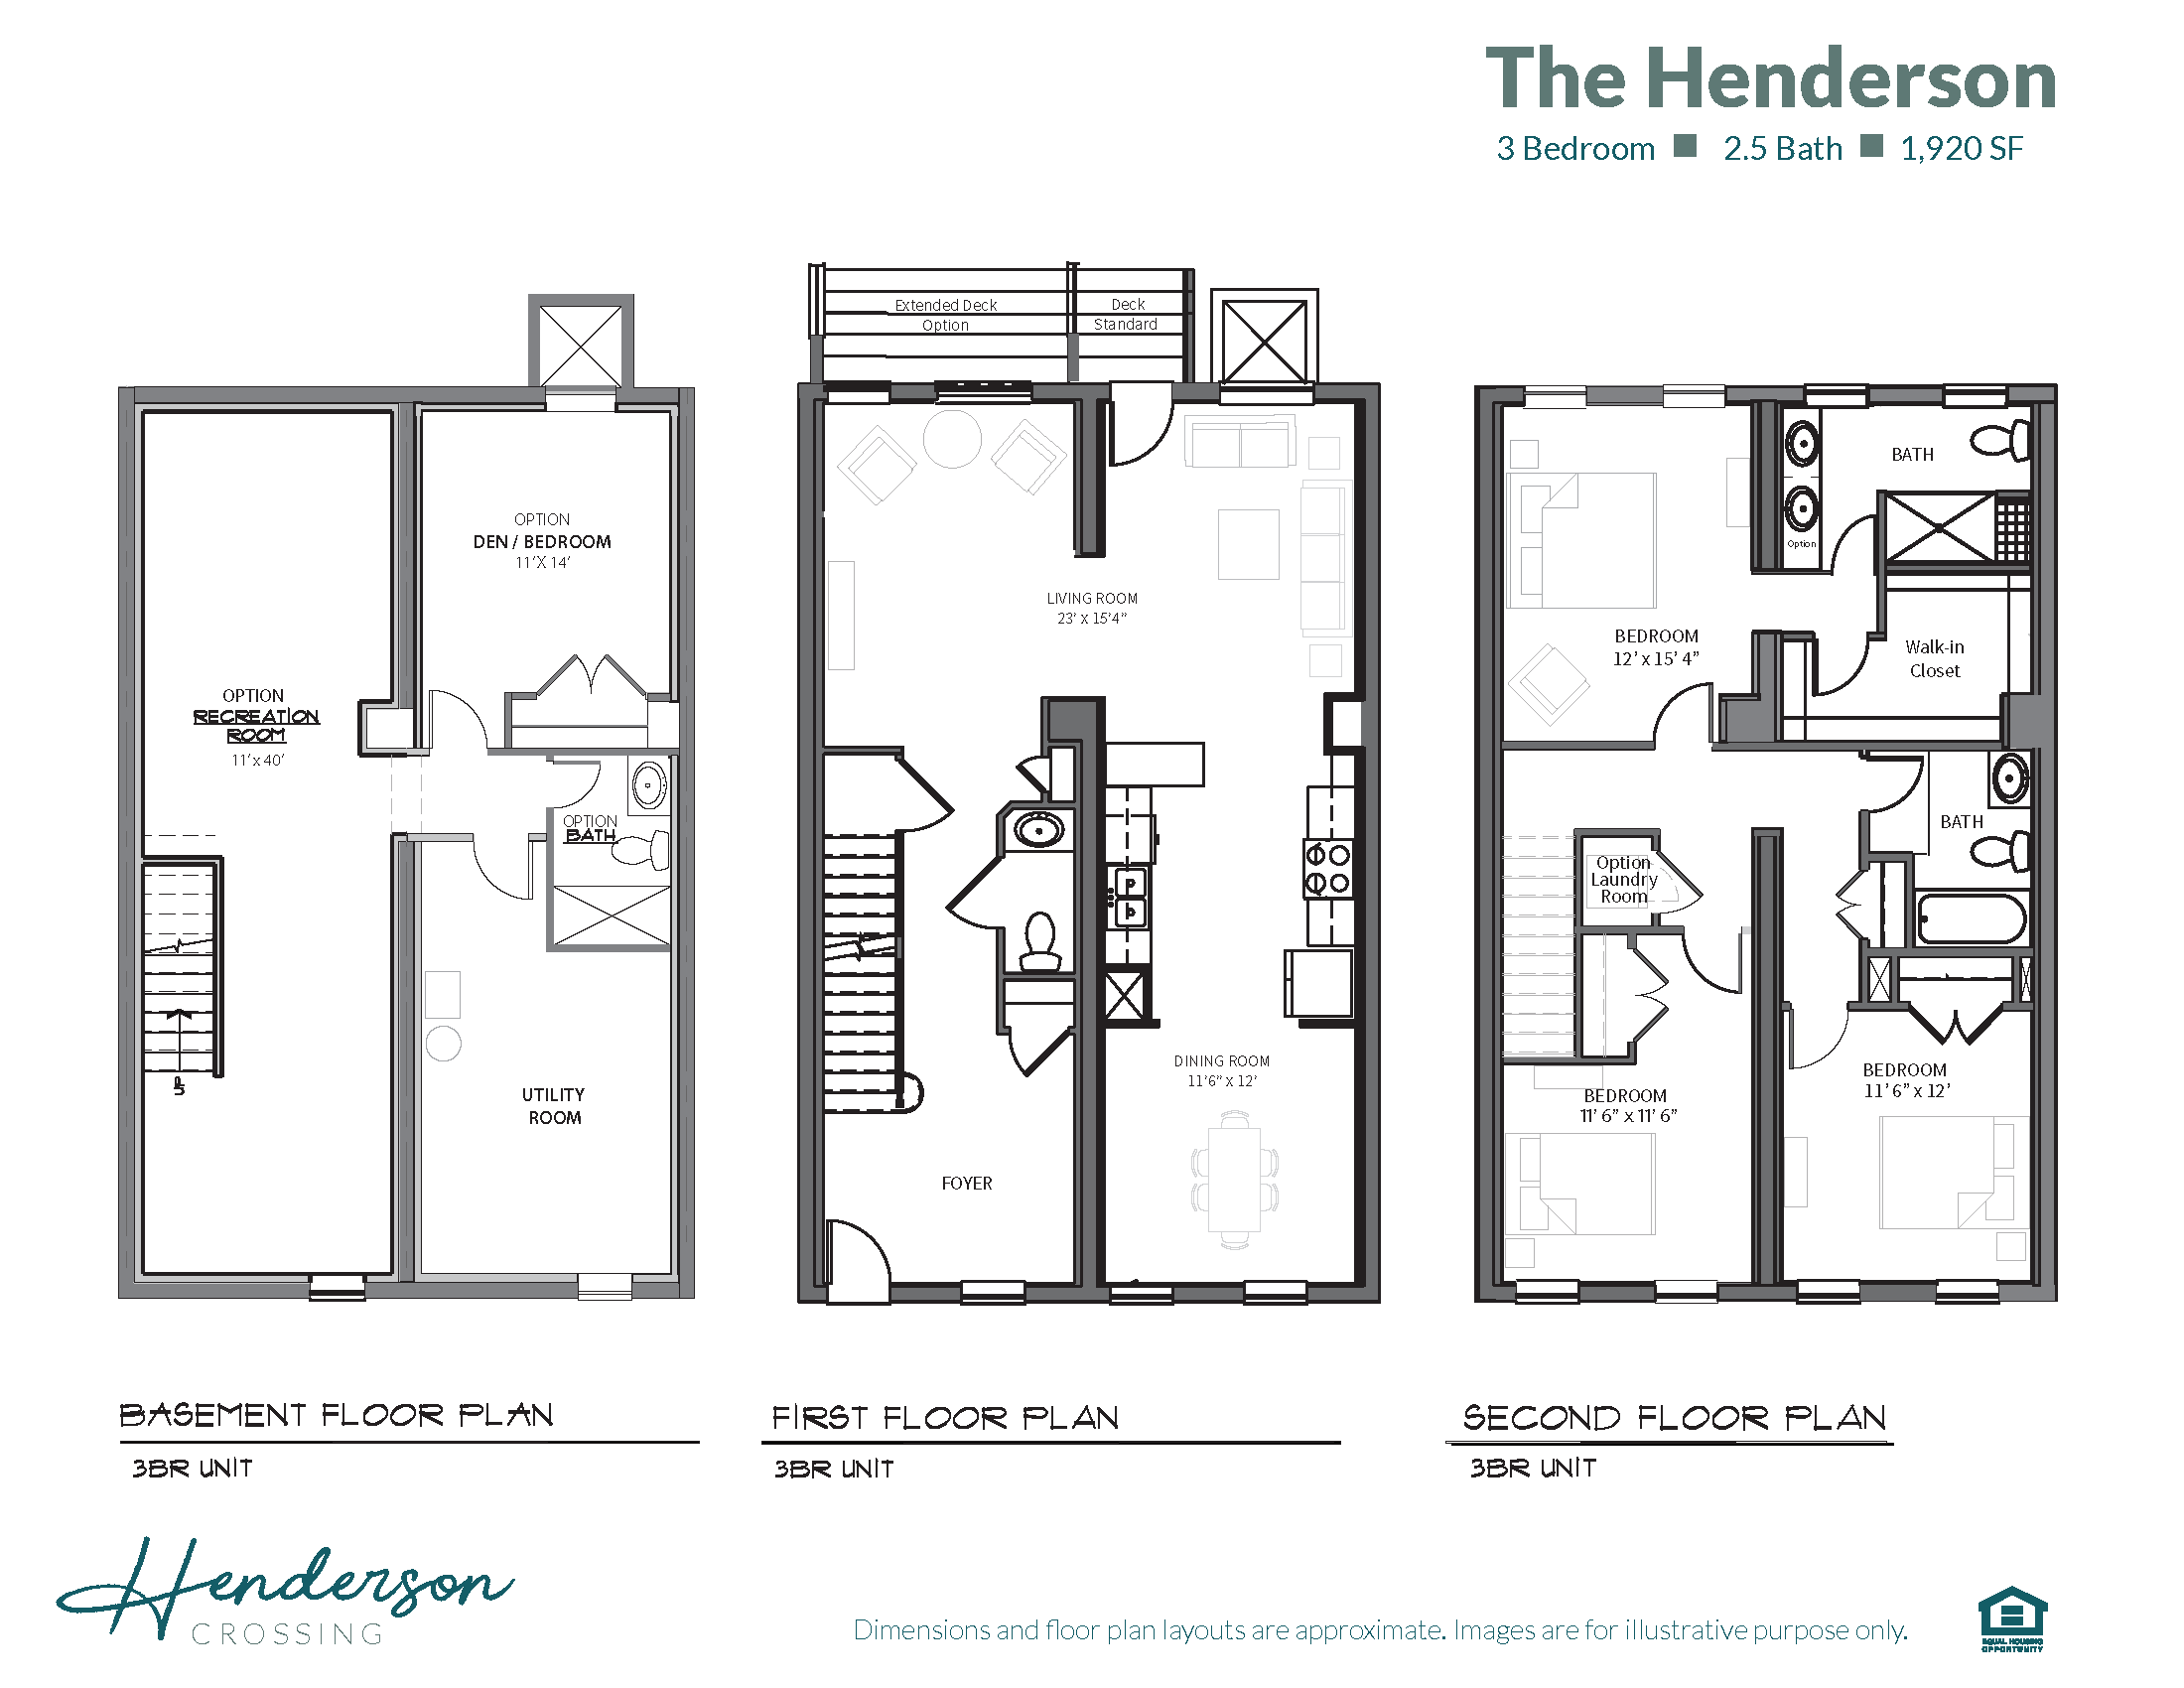 floor plans_combined_Page_2.png